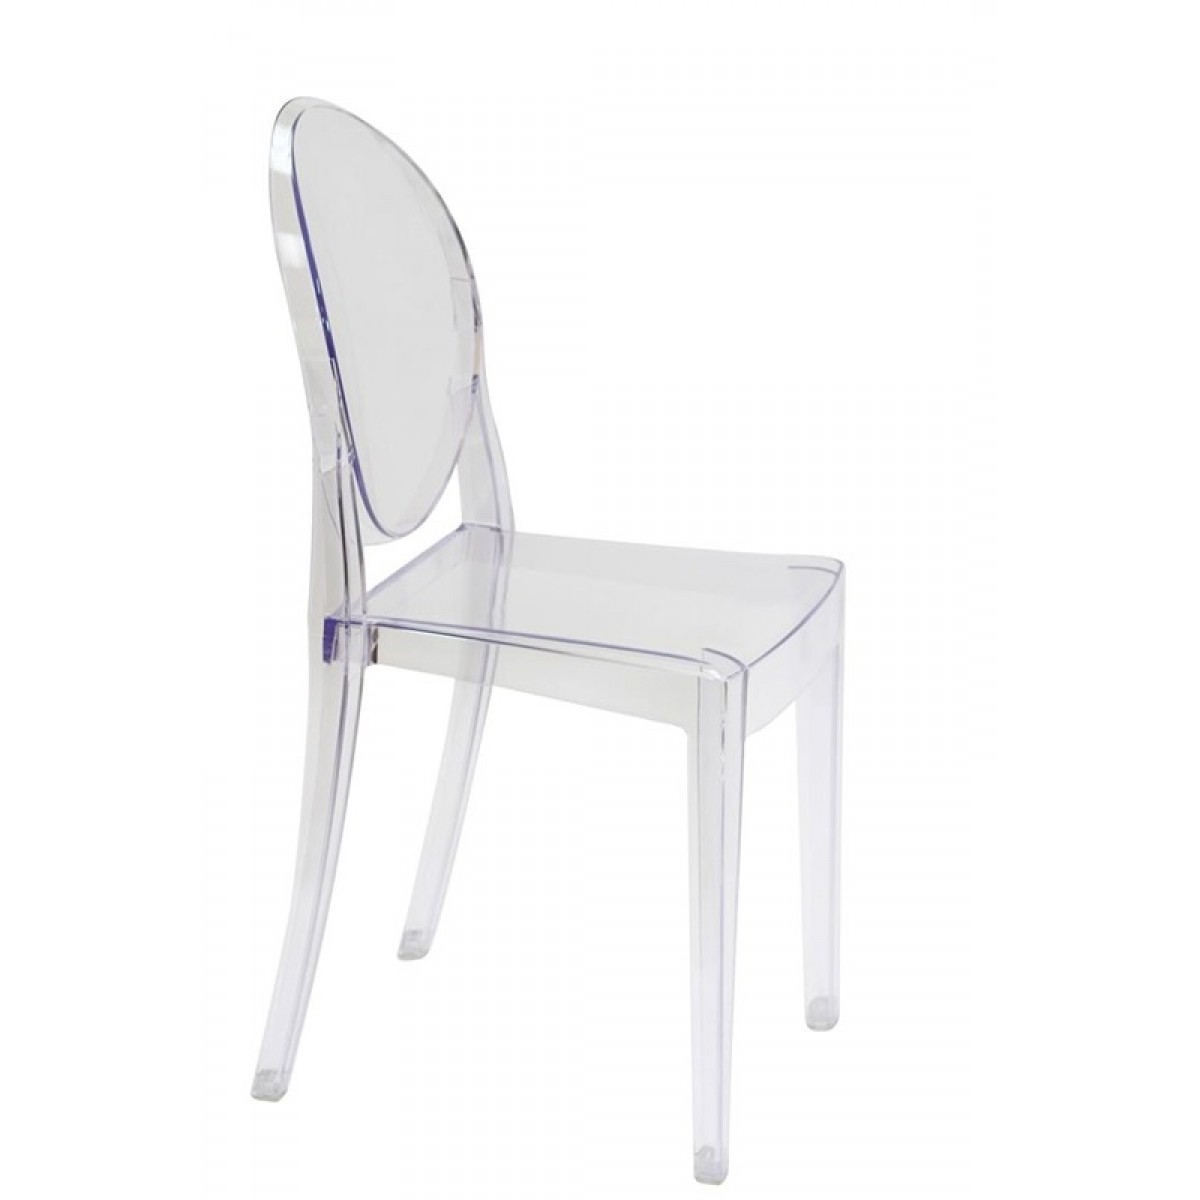 ghost chairs cheap beach chair with footrest and canopy victoria style dining clear color